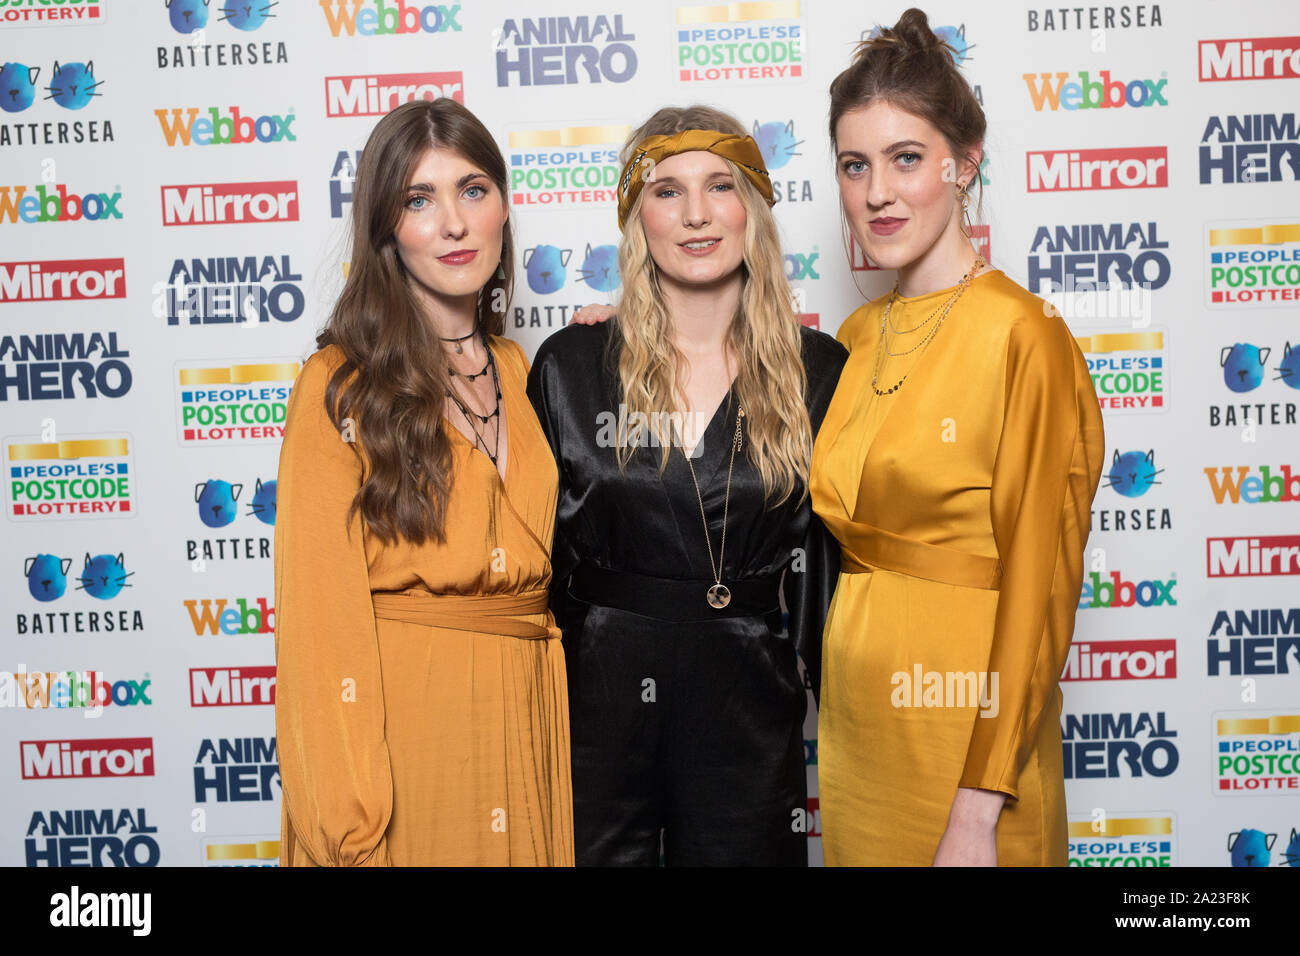 Page 3 Showbiz Mirror High Resolution Stock Photography And Images Alamy